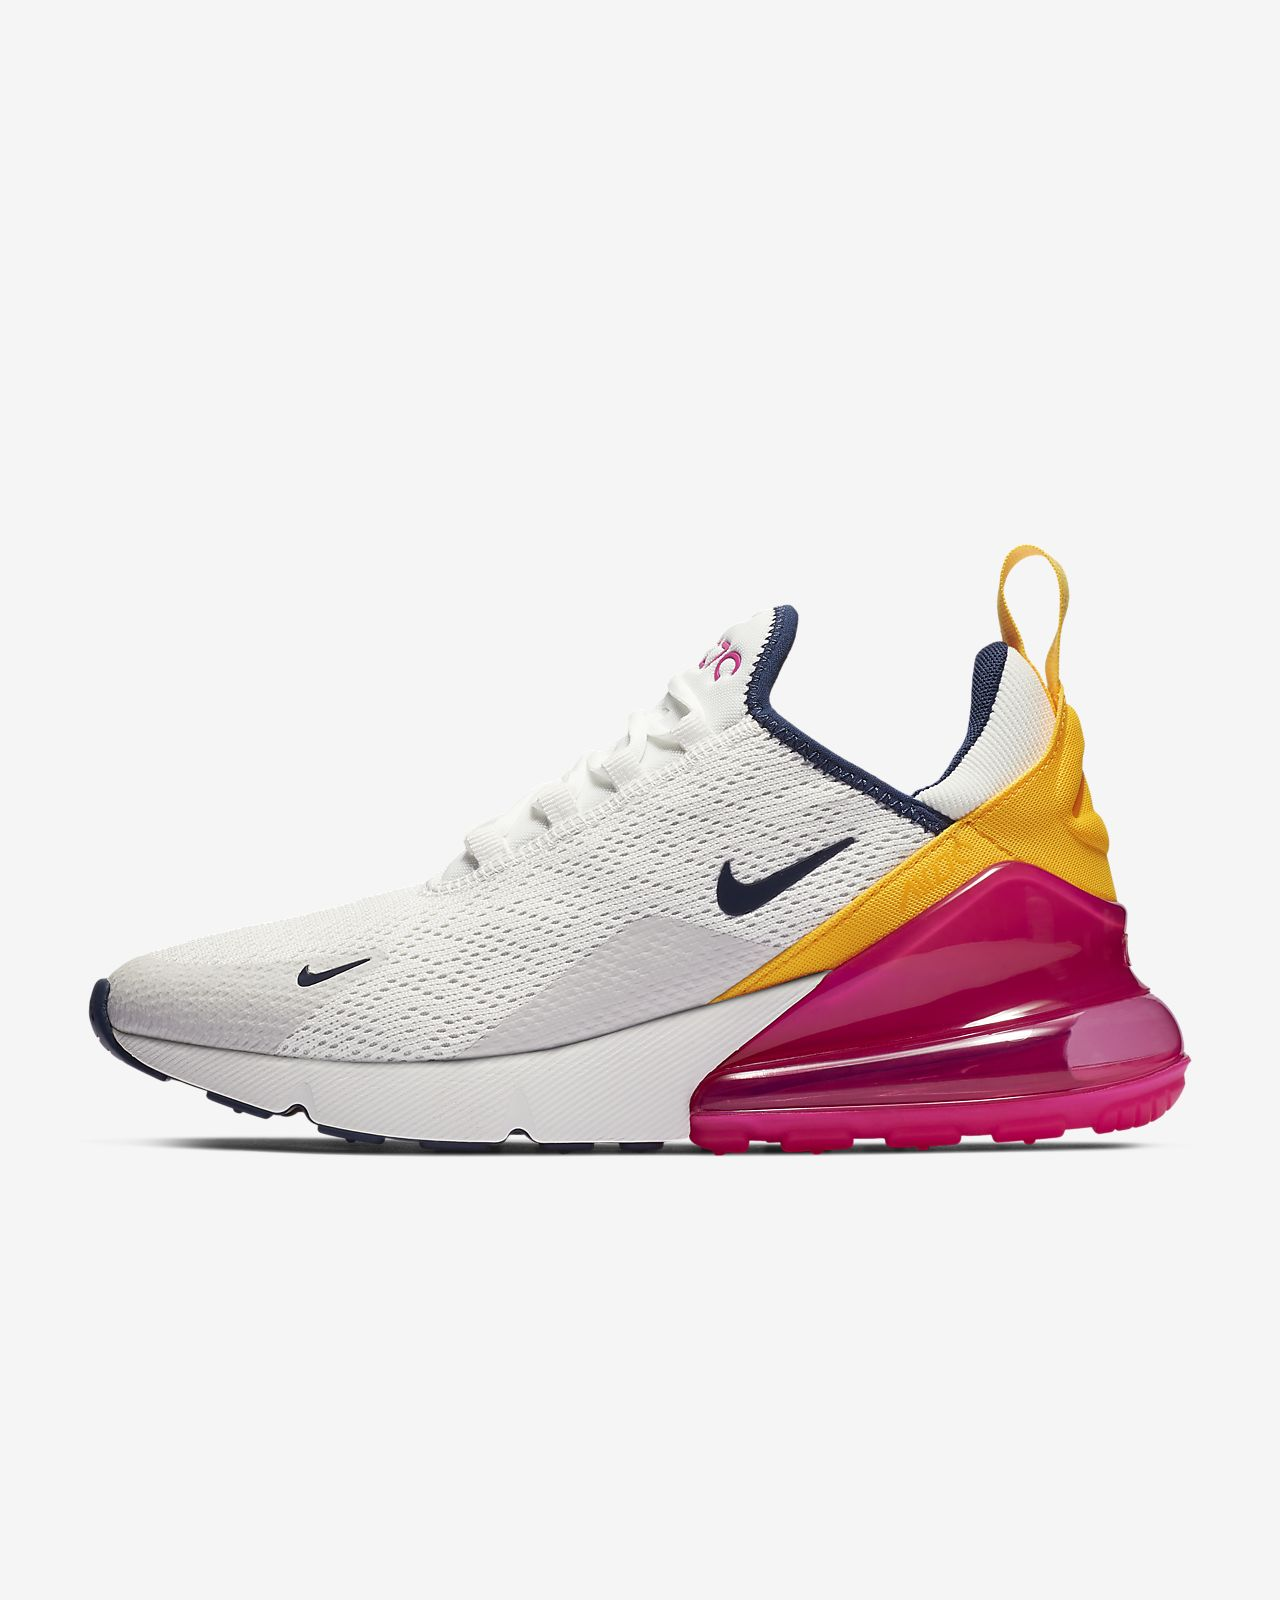 big sale be7eb e5326 Nike Air Max 270 Premium